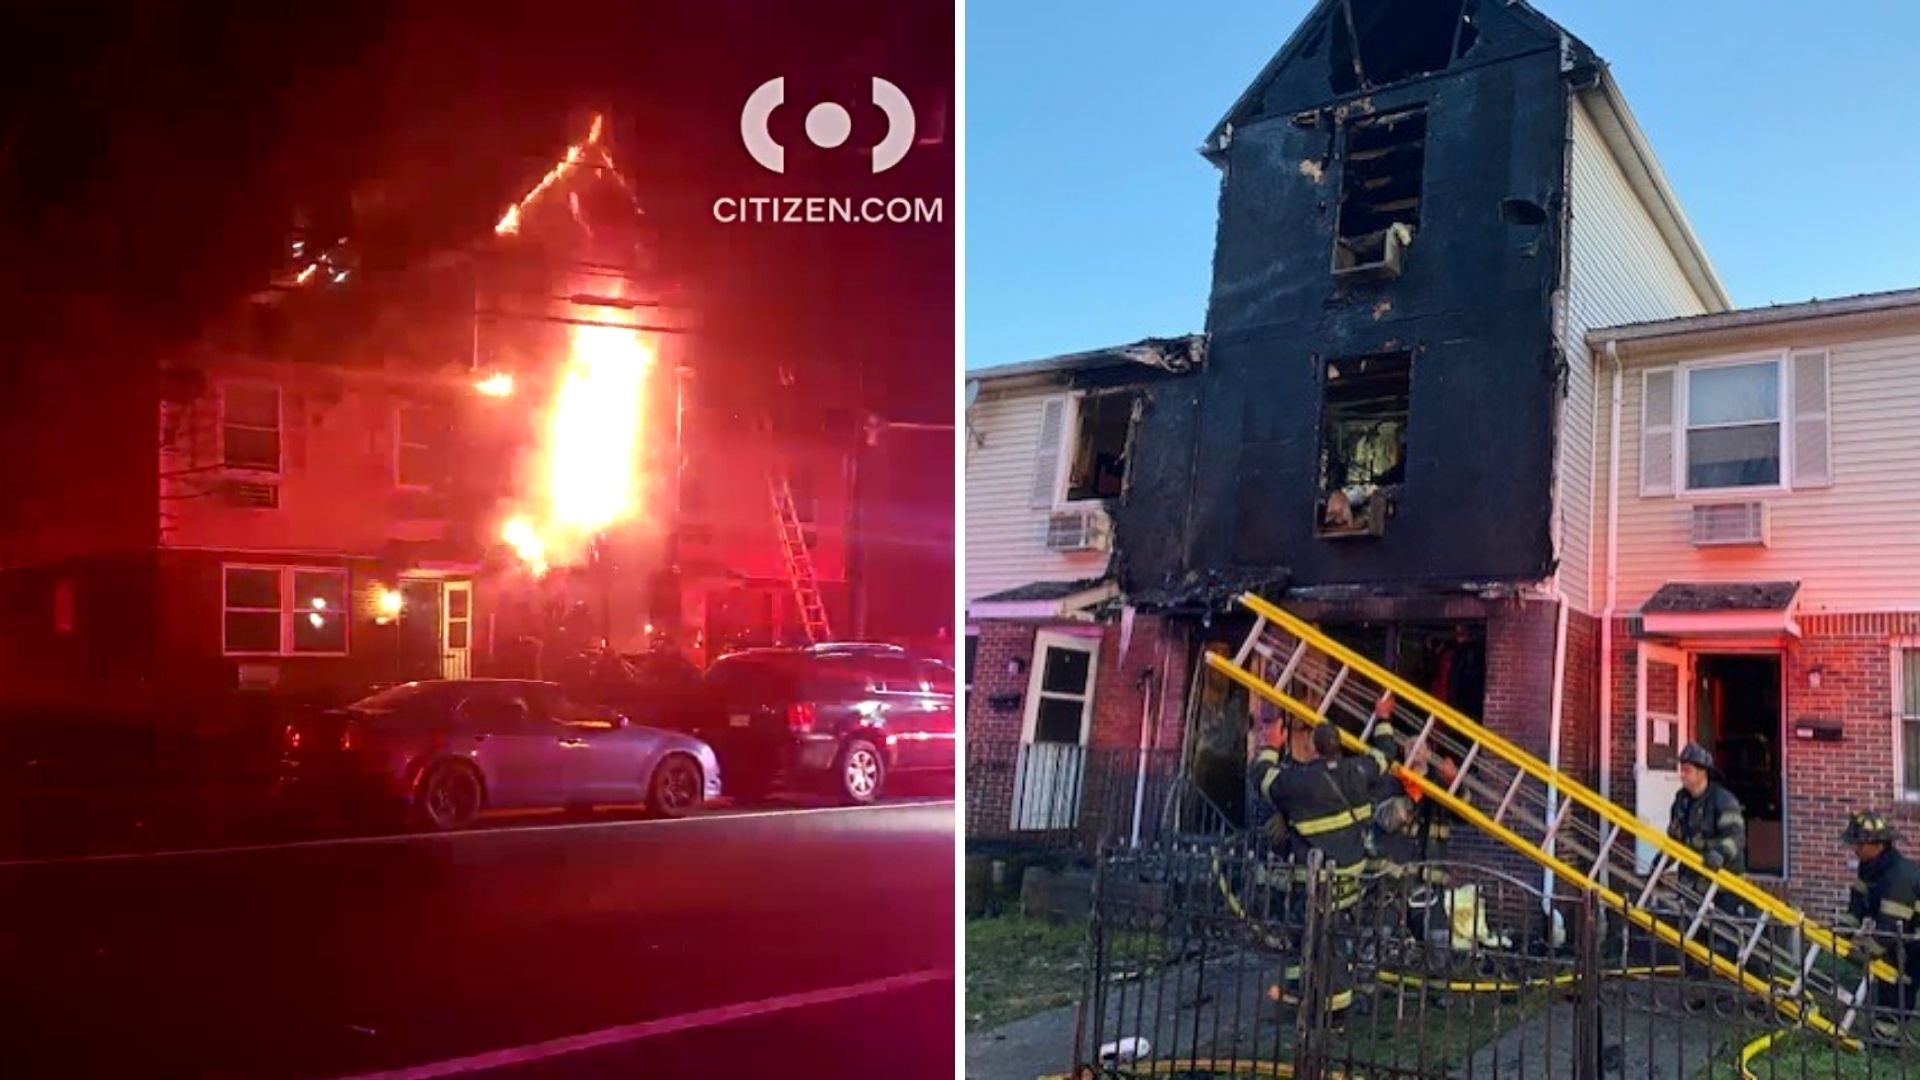 A large fire in a townhouse on Astor Street in Newark, New Jersey that left a 7-year-old boy dead on Thursday, April 8, 2021; Aftermath of the deadly fire. (Citizen App/Essex County Prosecutor's Office)